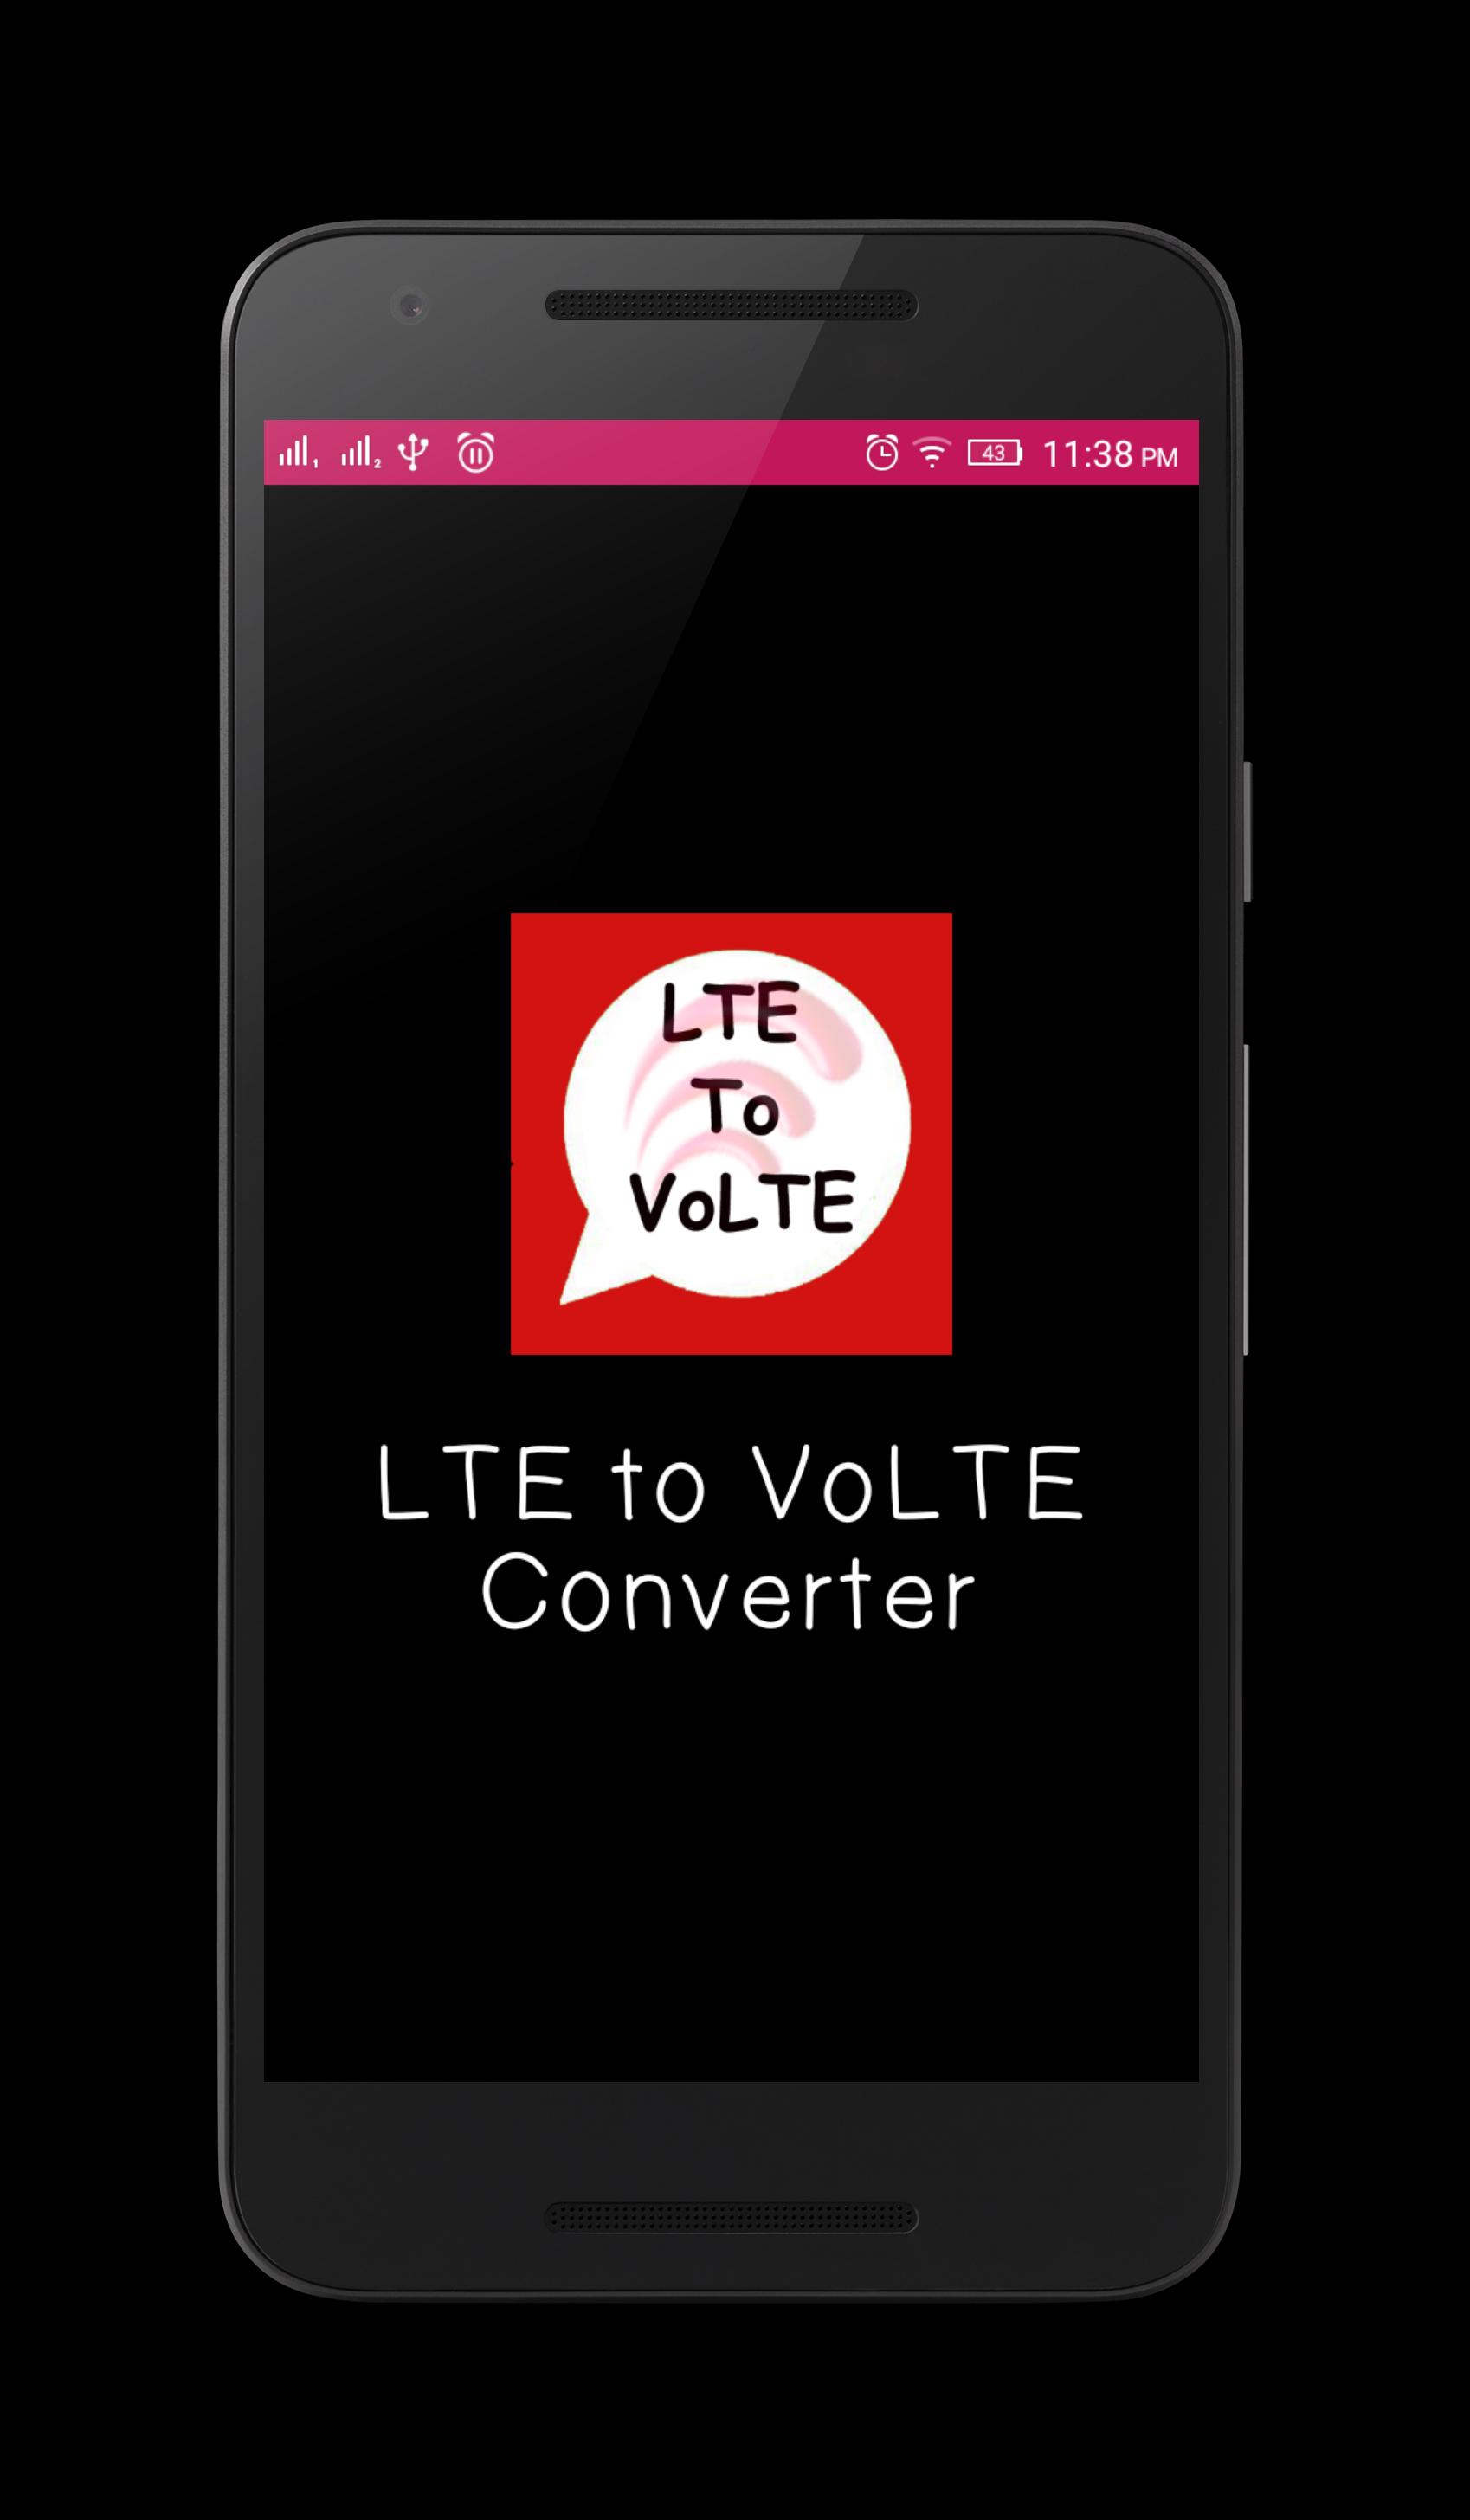 LTE to VoLTE Convert for Android - APK Download